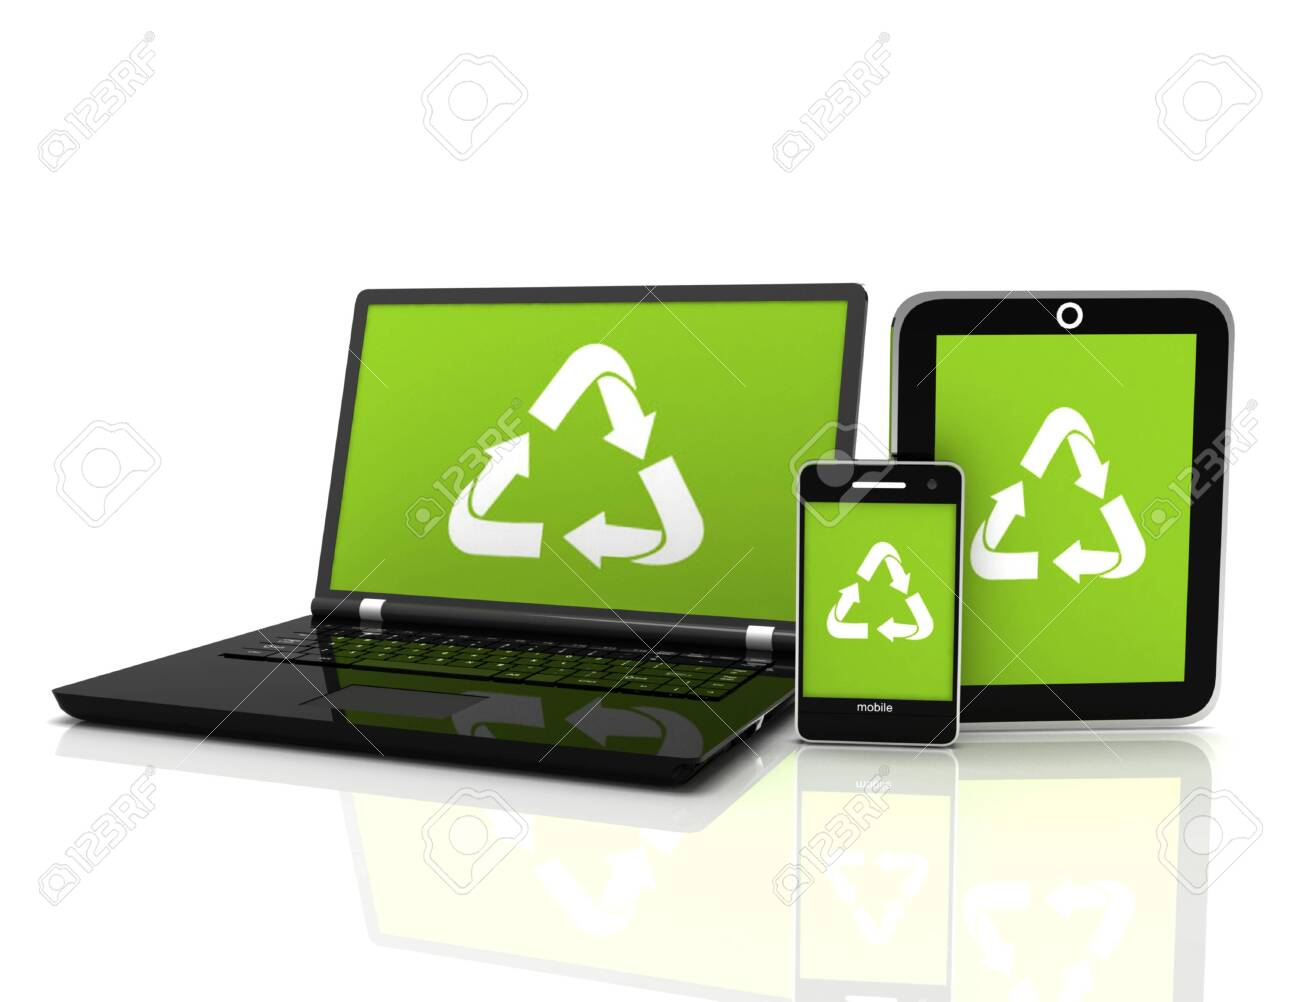 3D Laptop with a recycling symbol on screen. environmental conservation concept - 148840747